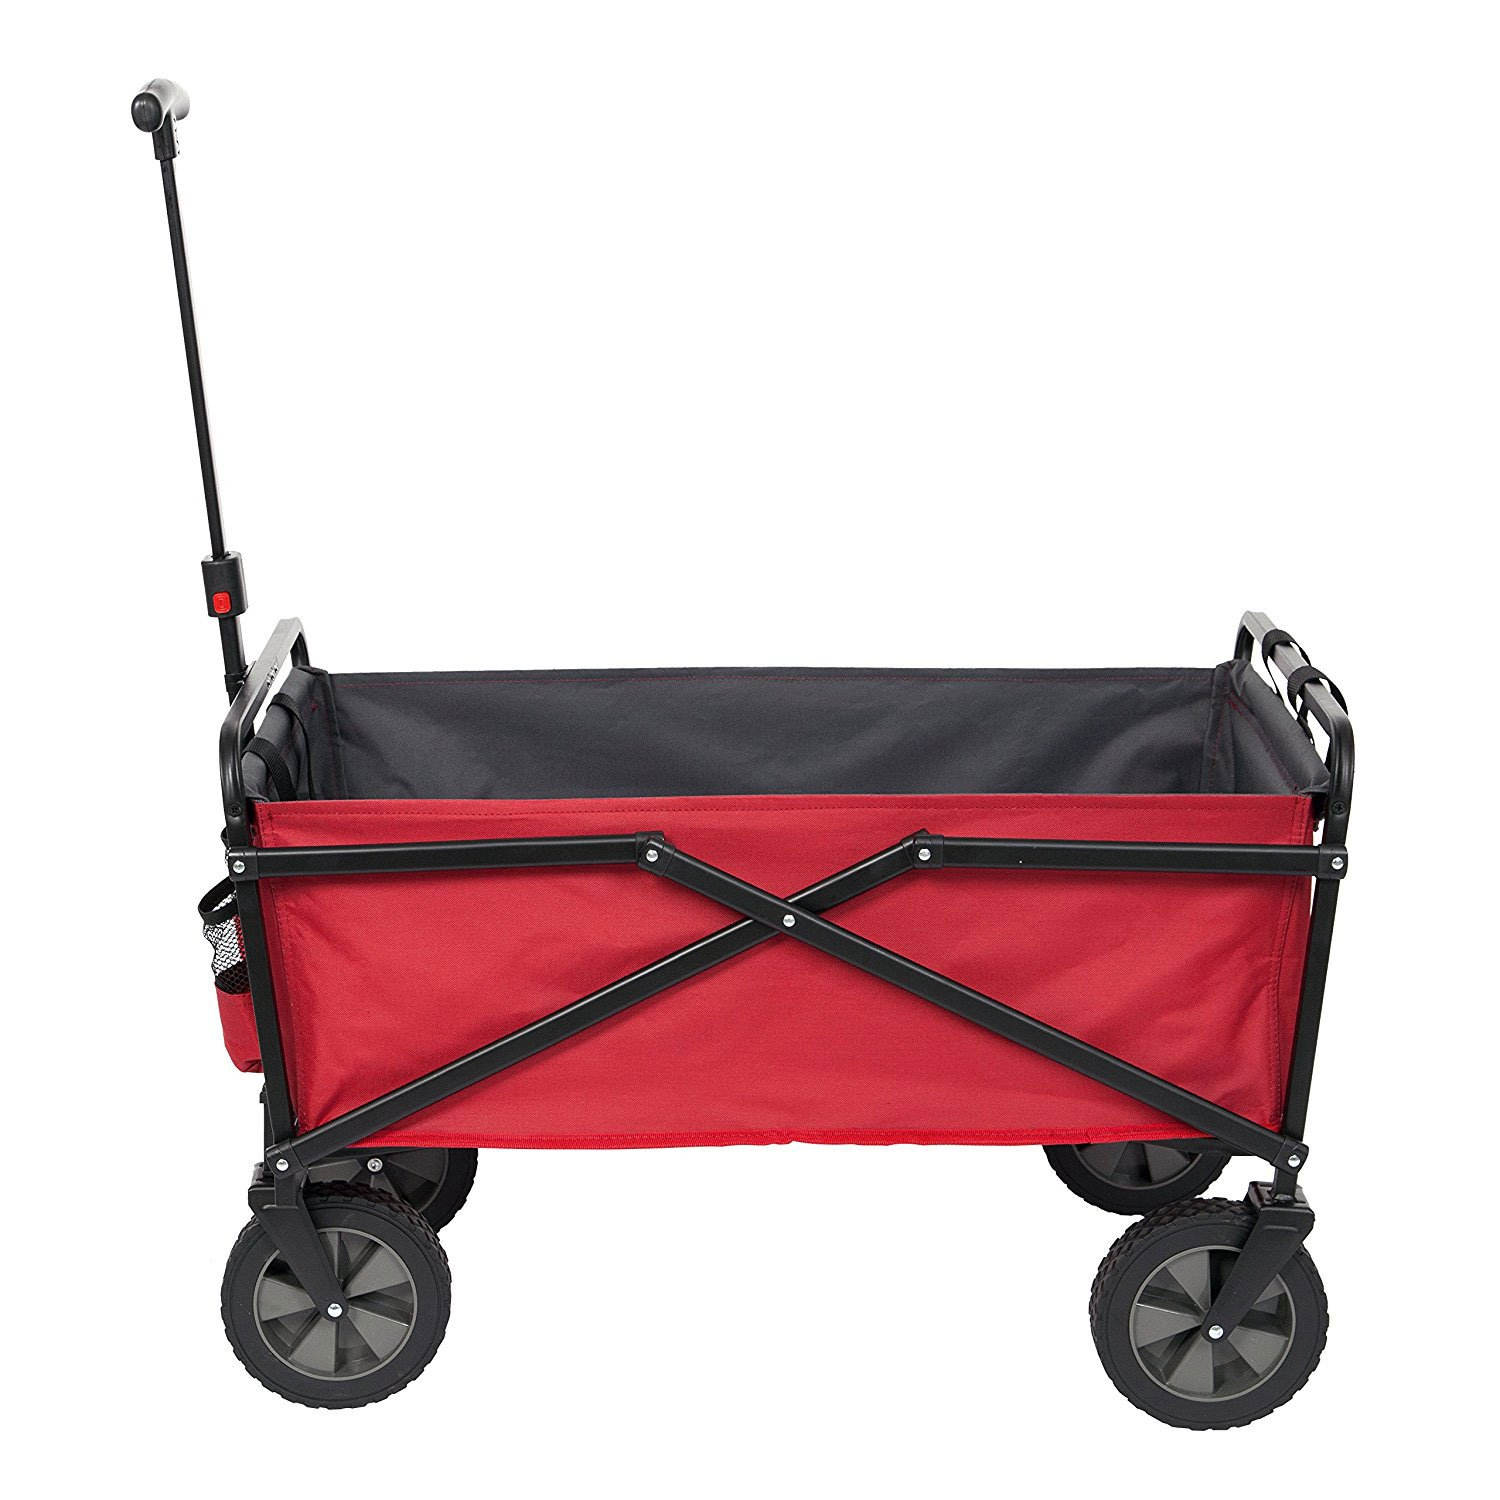 Seina Collapsible Steel Frame Folding Utility Wagon Outdoor Garden Cart, Red